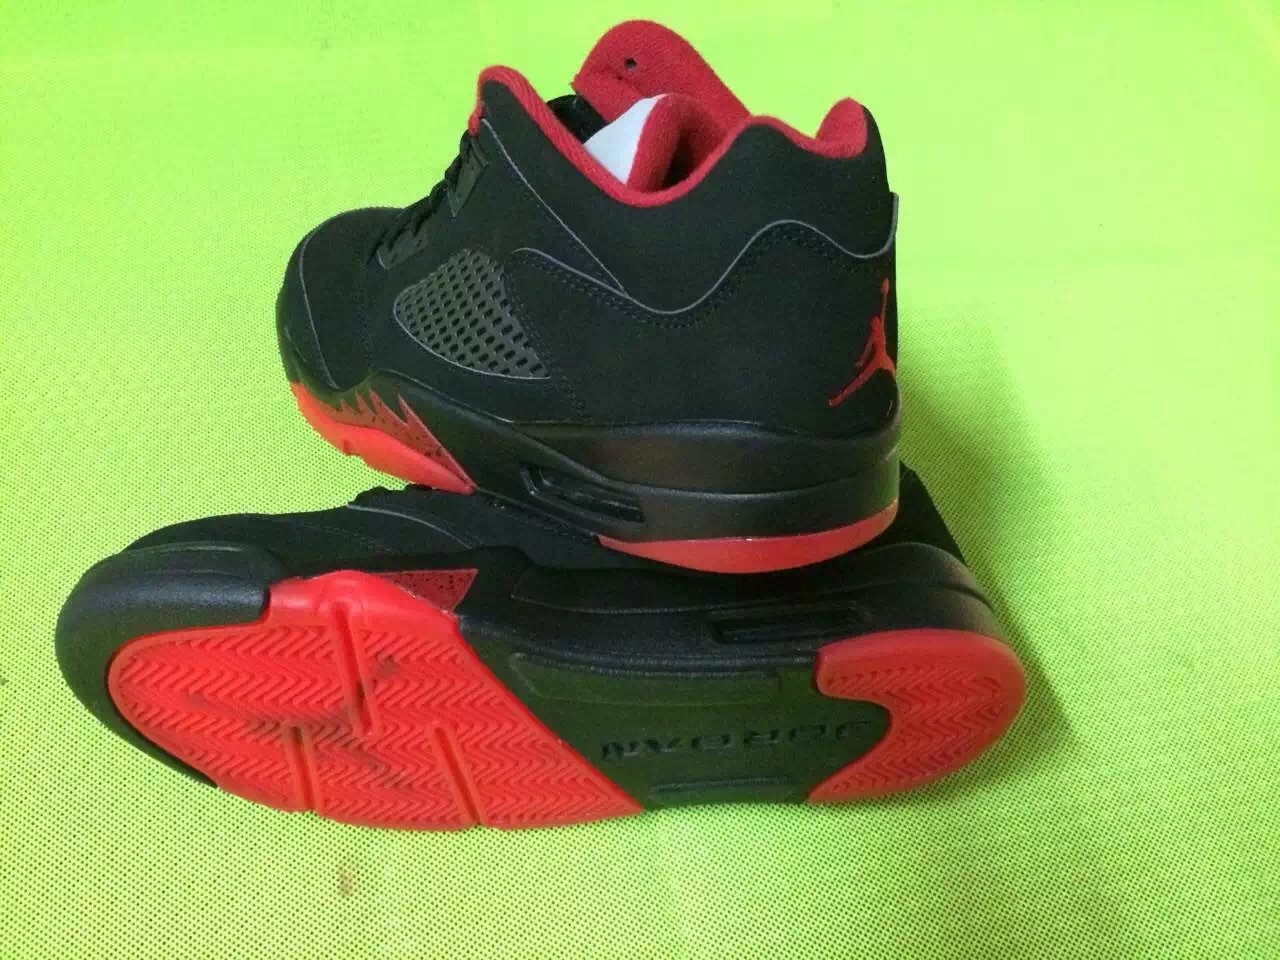 alternate-90-air-jordan-5-low-2